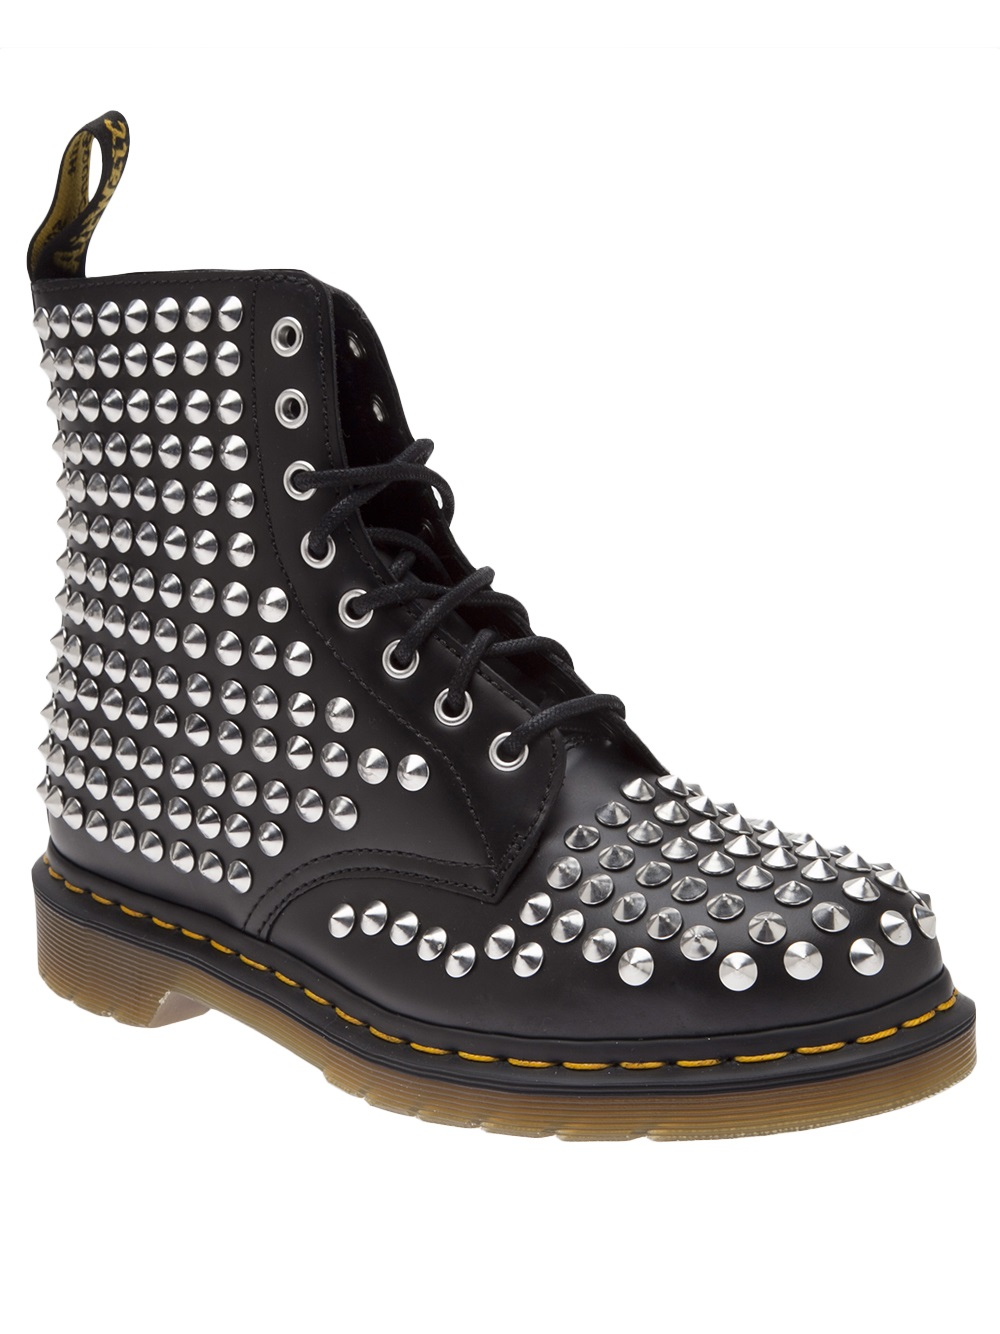 Dr Martens Spiked Boot In Black For Men Lyst